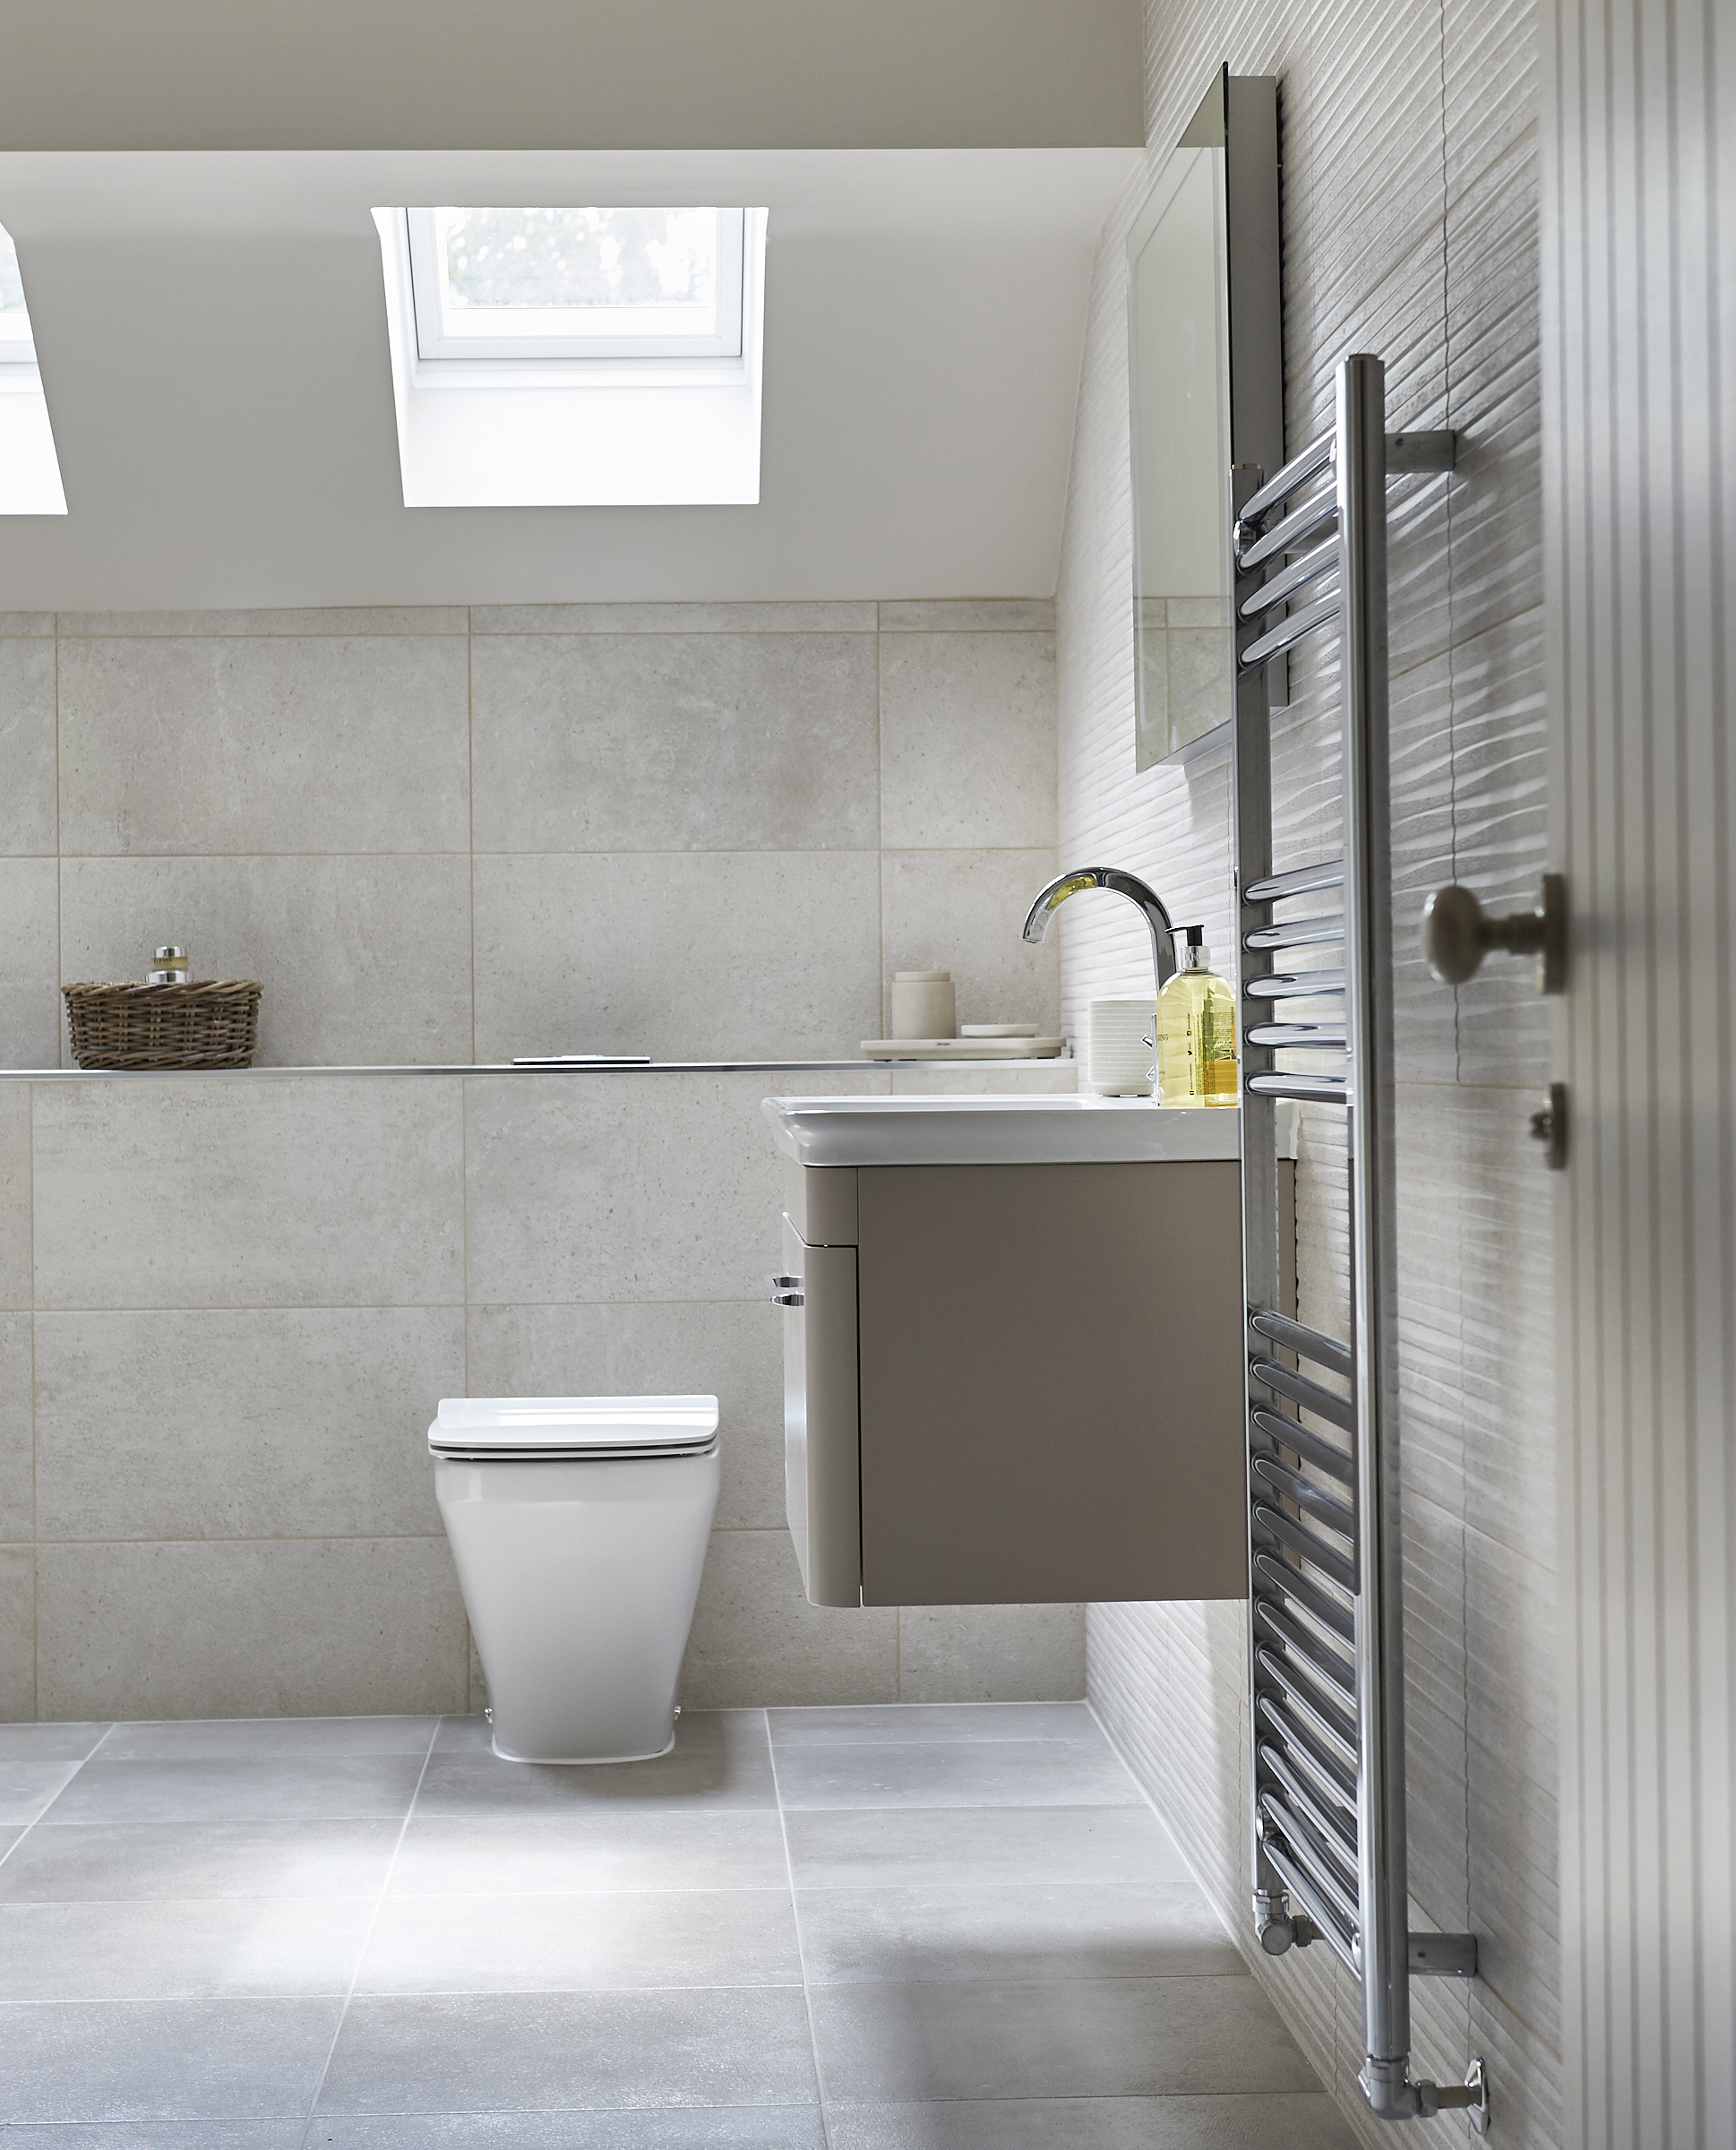 Digital showers for a 24-home development